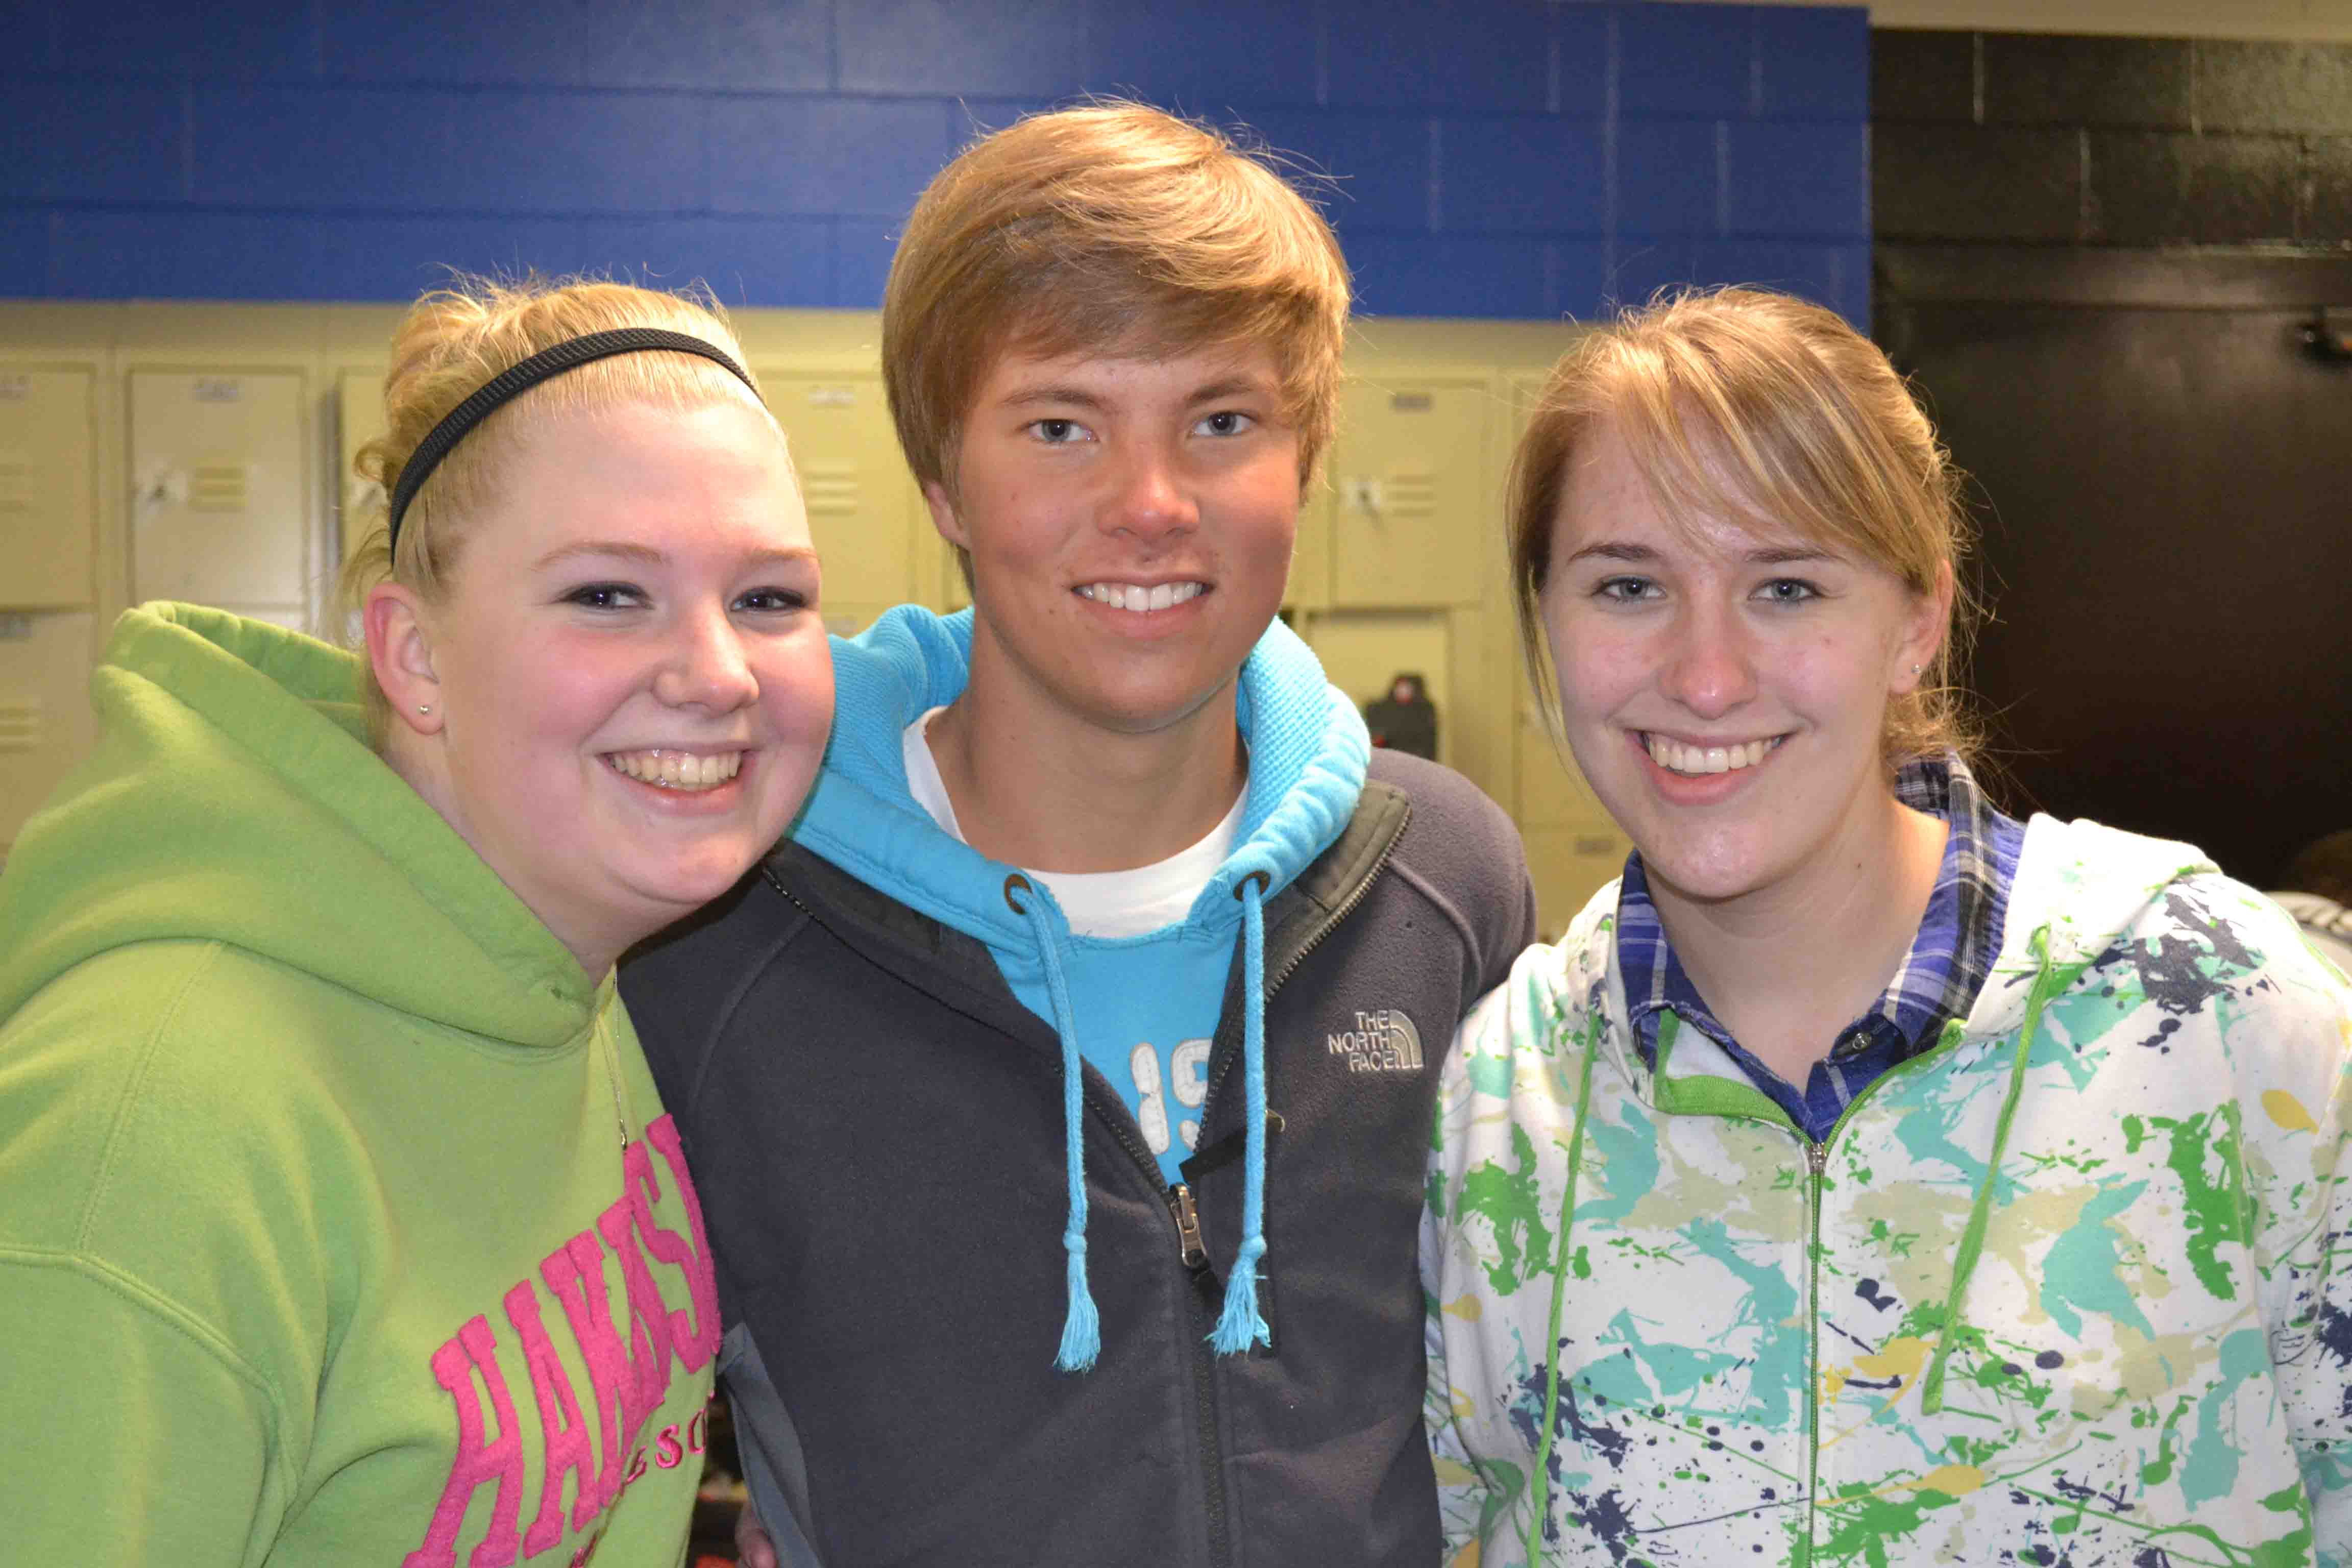 Sam Gates, JT Jaesche and Raelyn Prikasky are still smiling after leaving the ice.